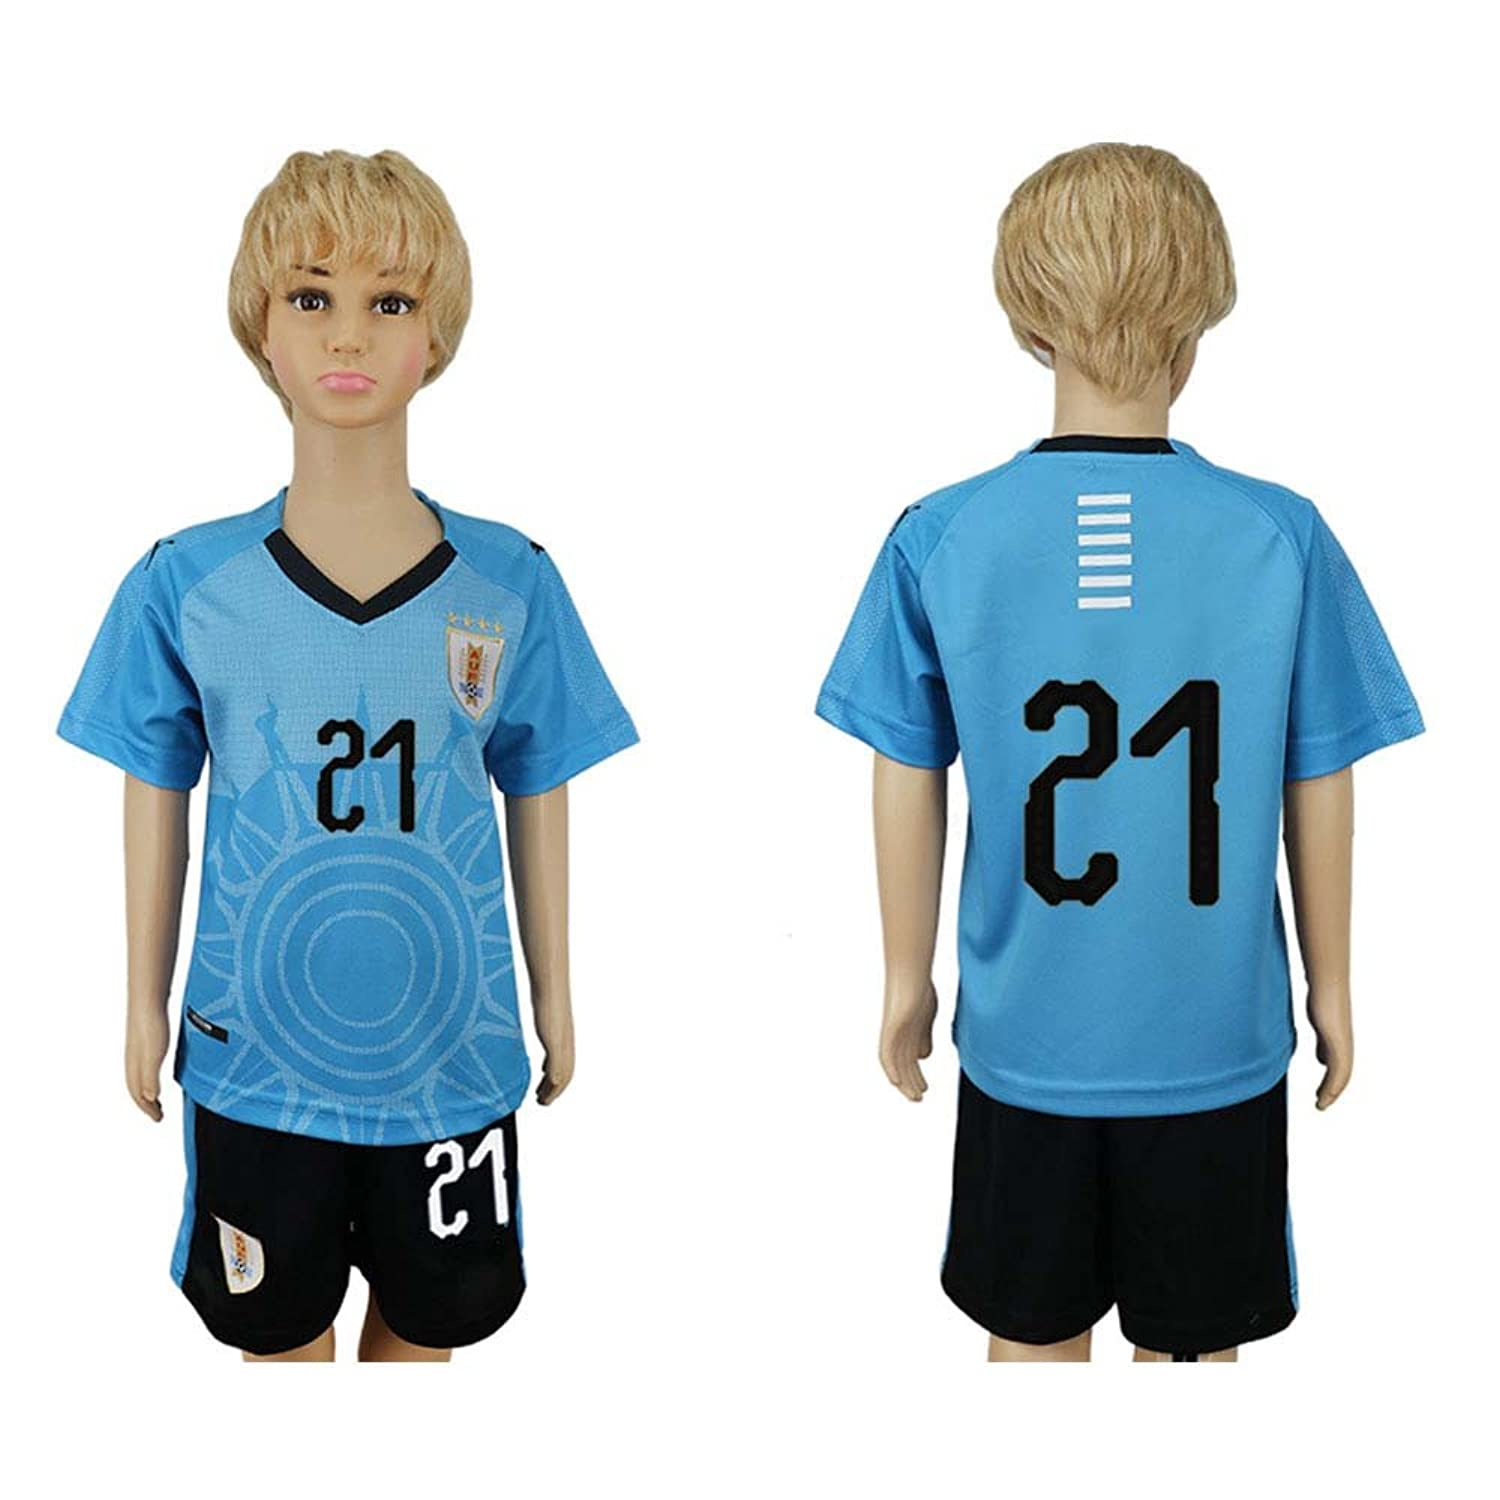 Puizozi SHIRT ボーイズ B07D3K628R28# (12 to 14 Years Old)